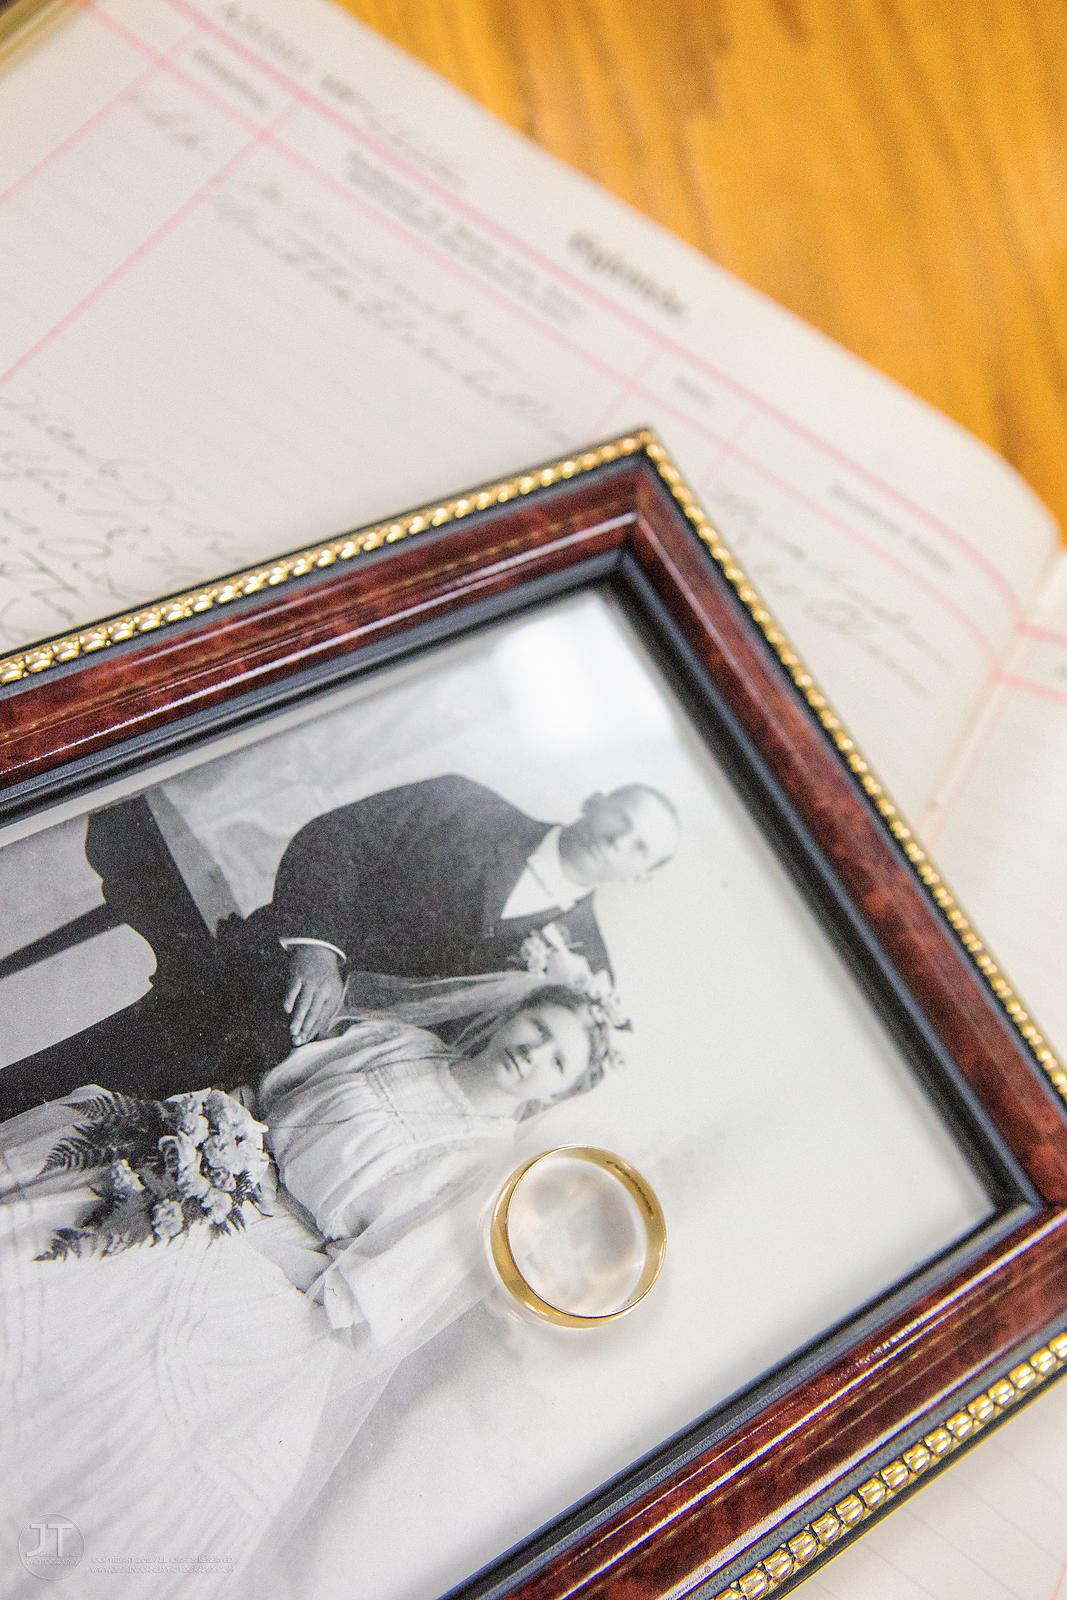 Gazette - Found 1906 Wedding Ring, June 24, 2014